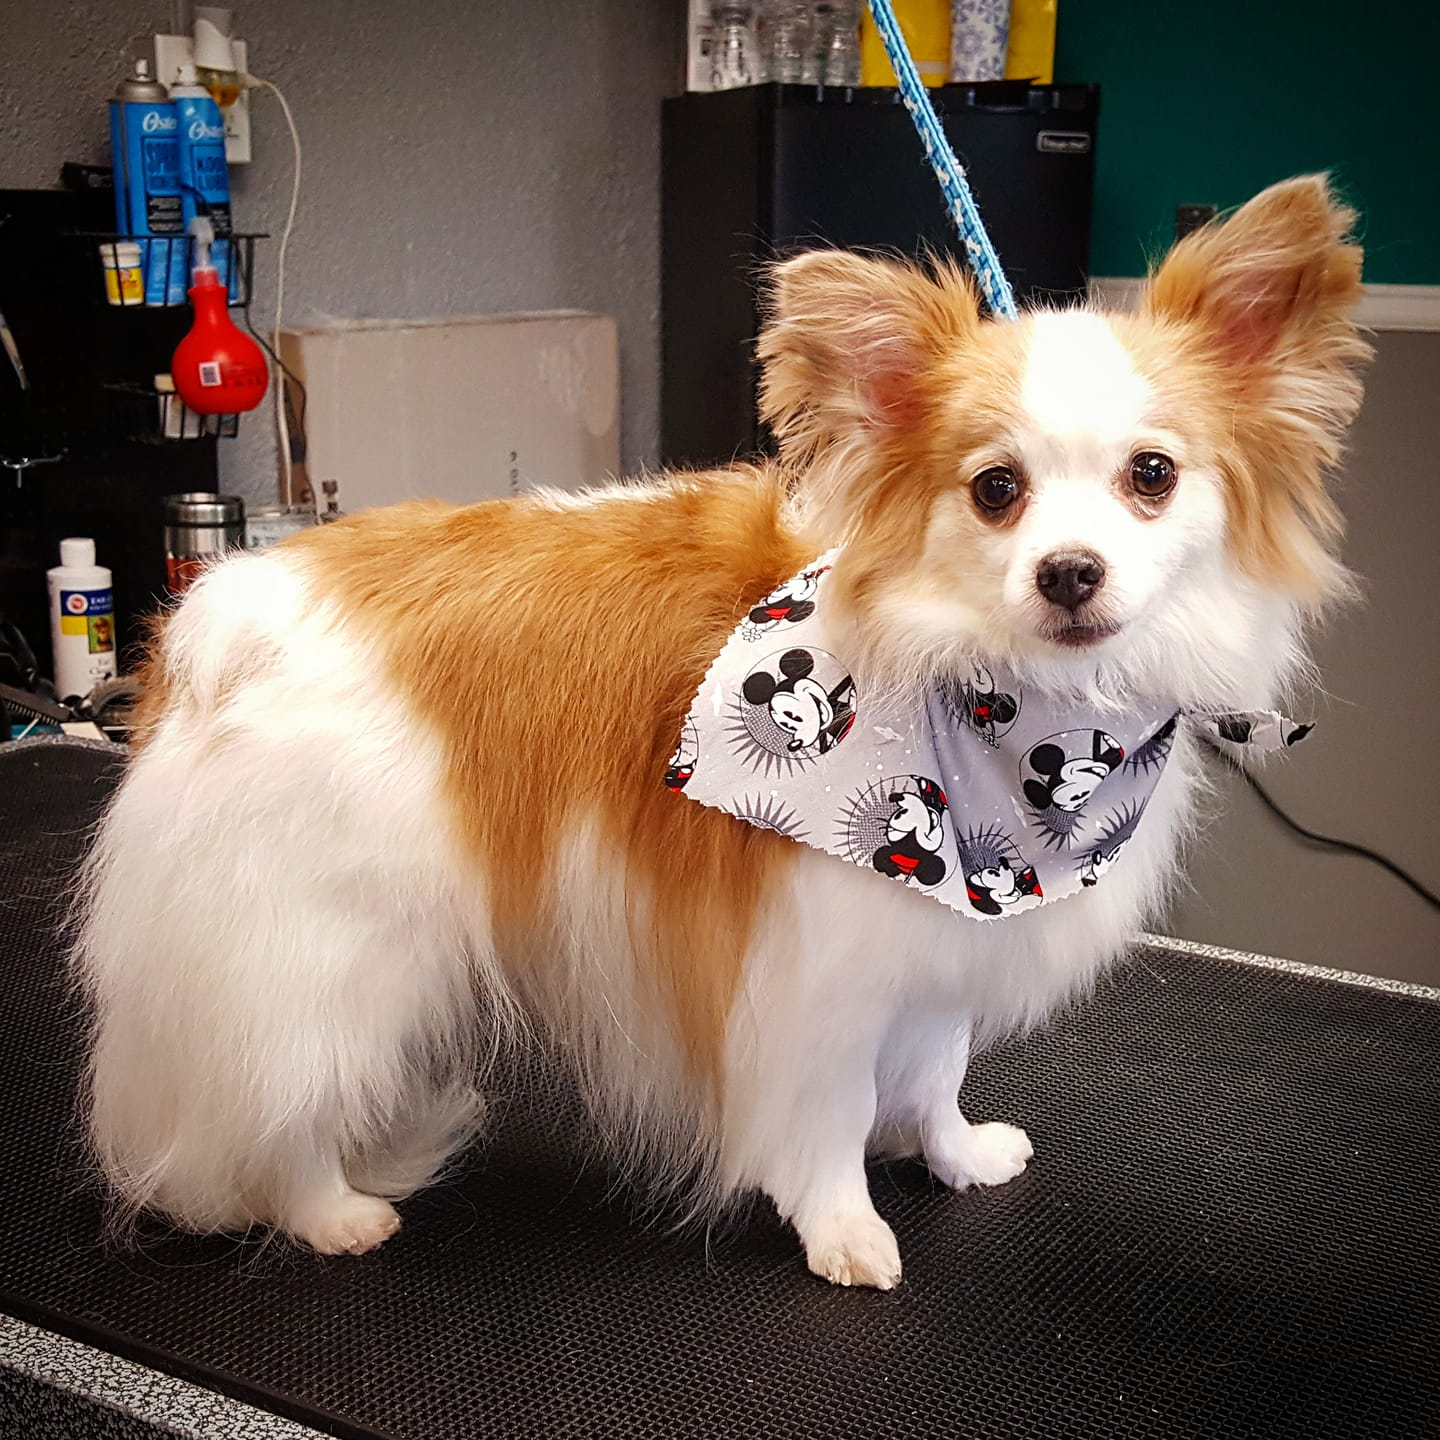 Dream team pet grooming walk in services both dog and cat solutioingenieria Choice Image